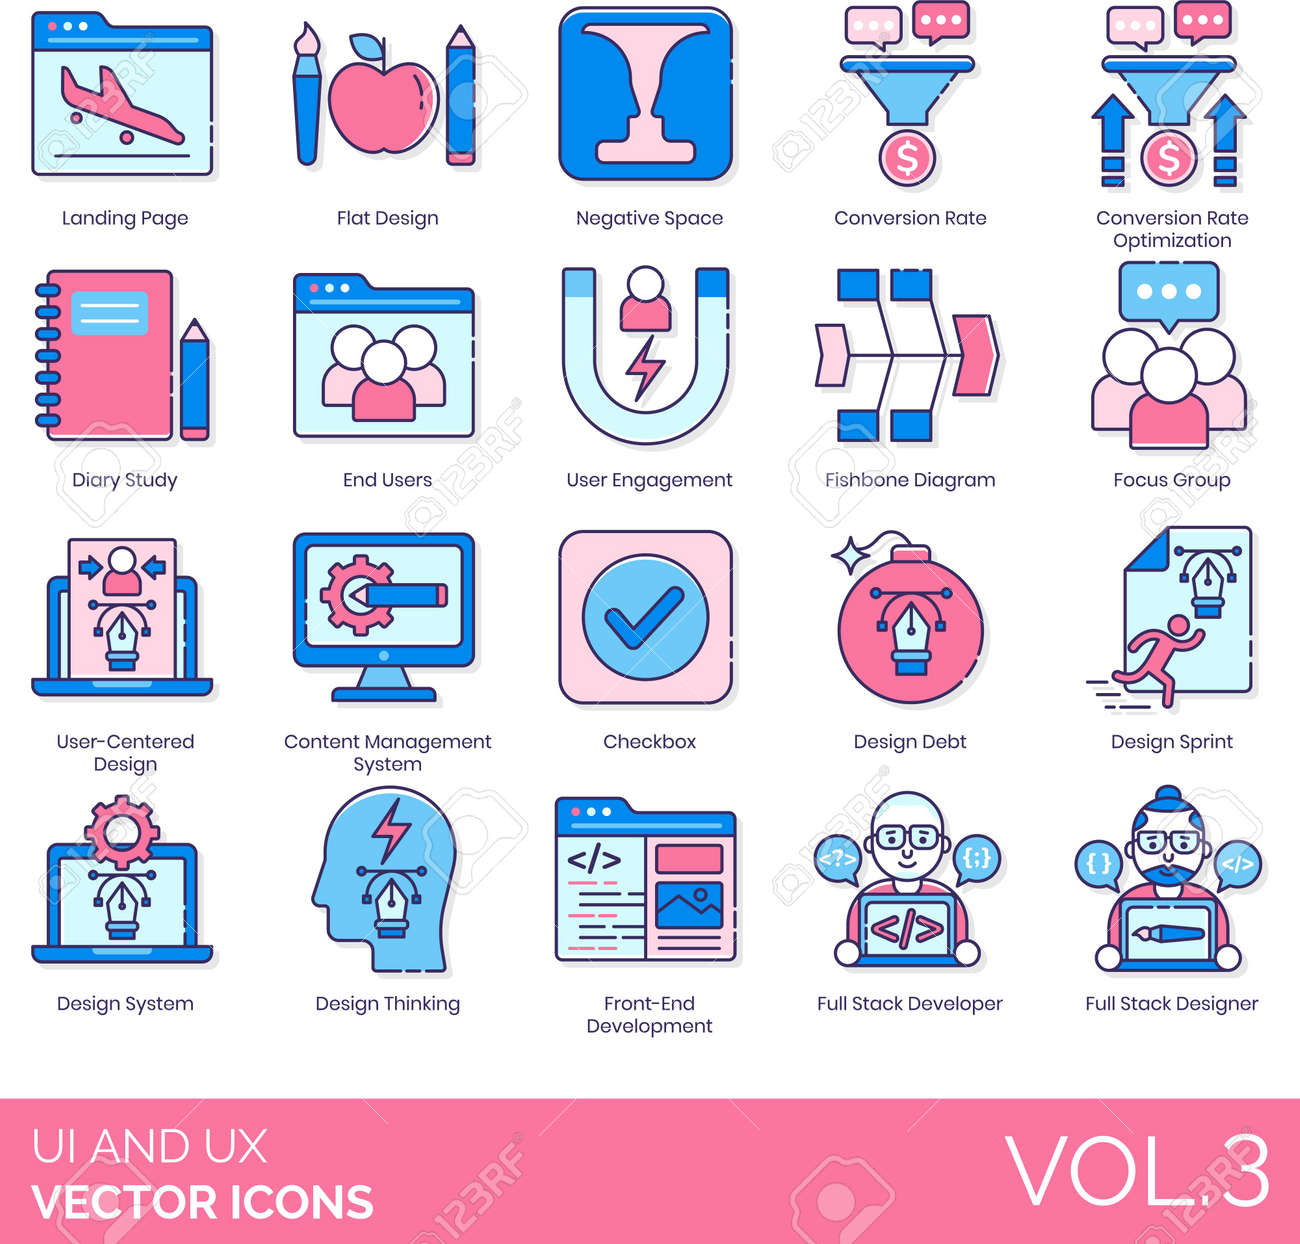 Line icons of UI and UX design, user engagement, development - 149433855